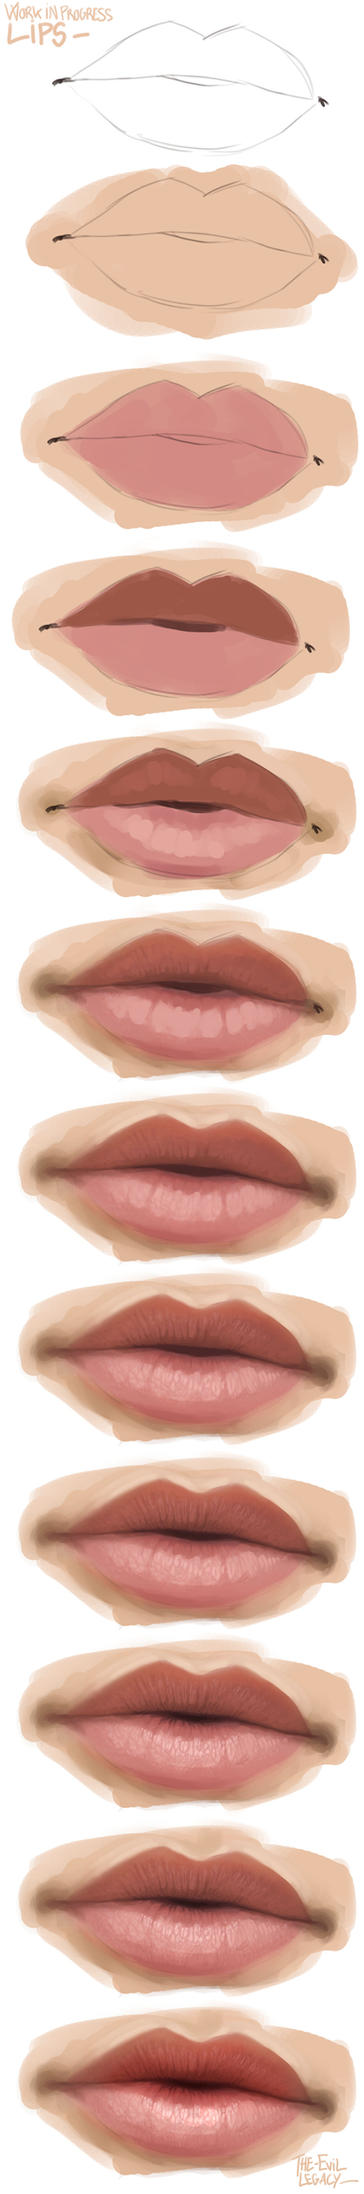 wip - lips by the-evil-legacy